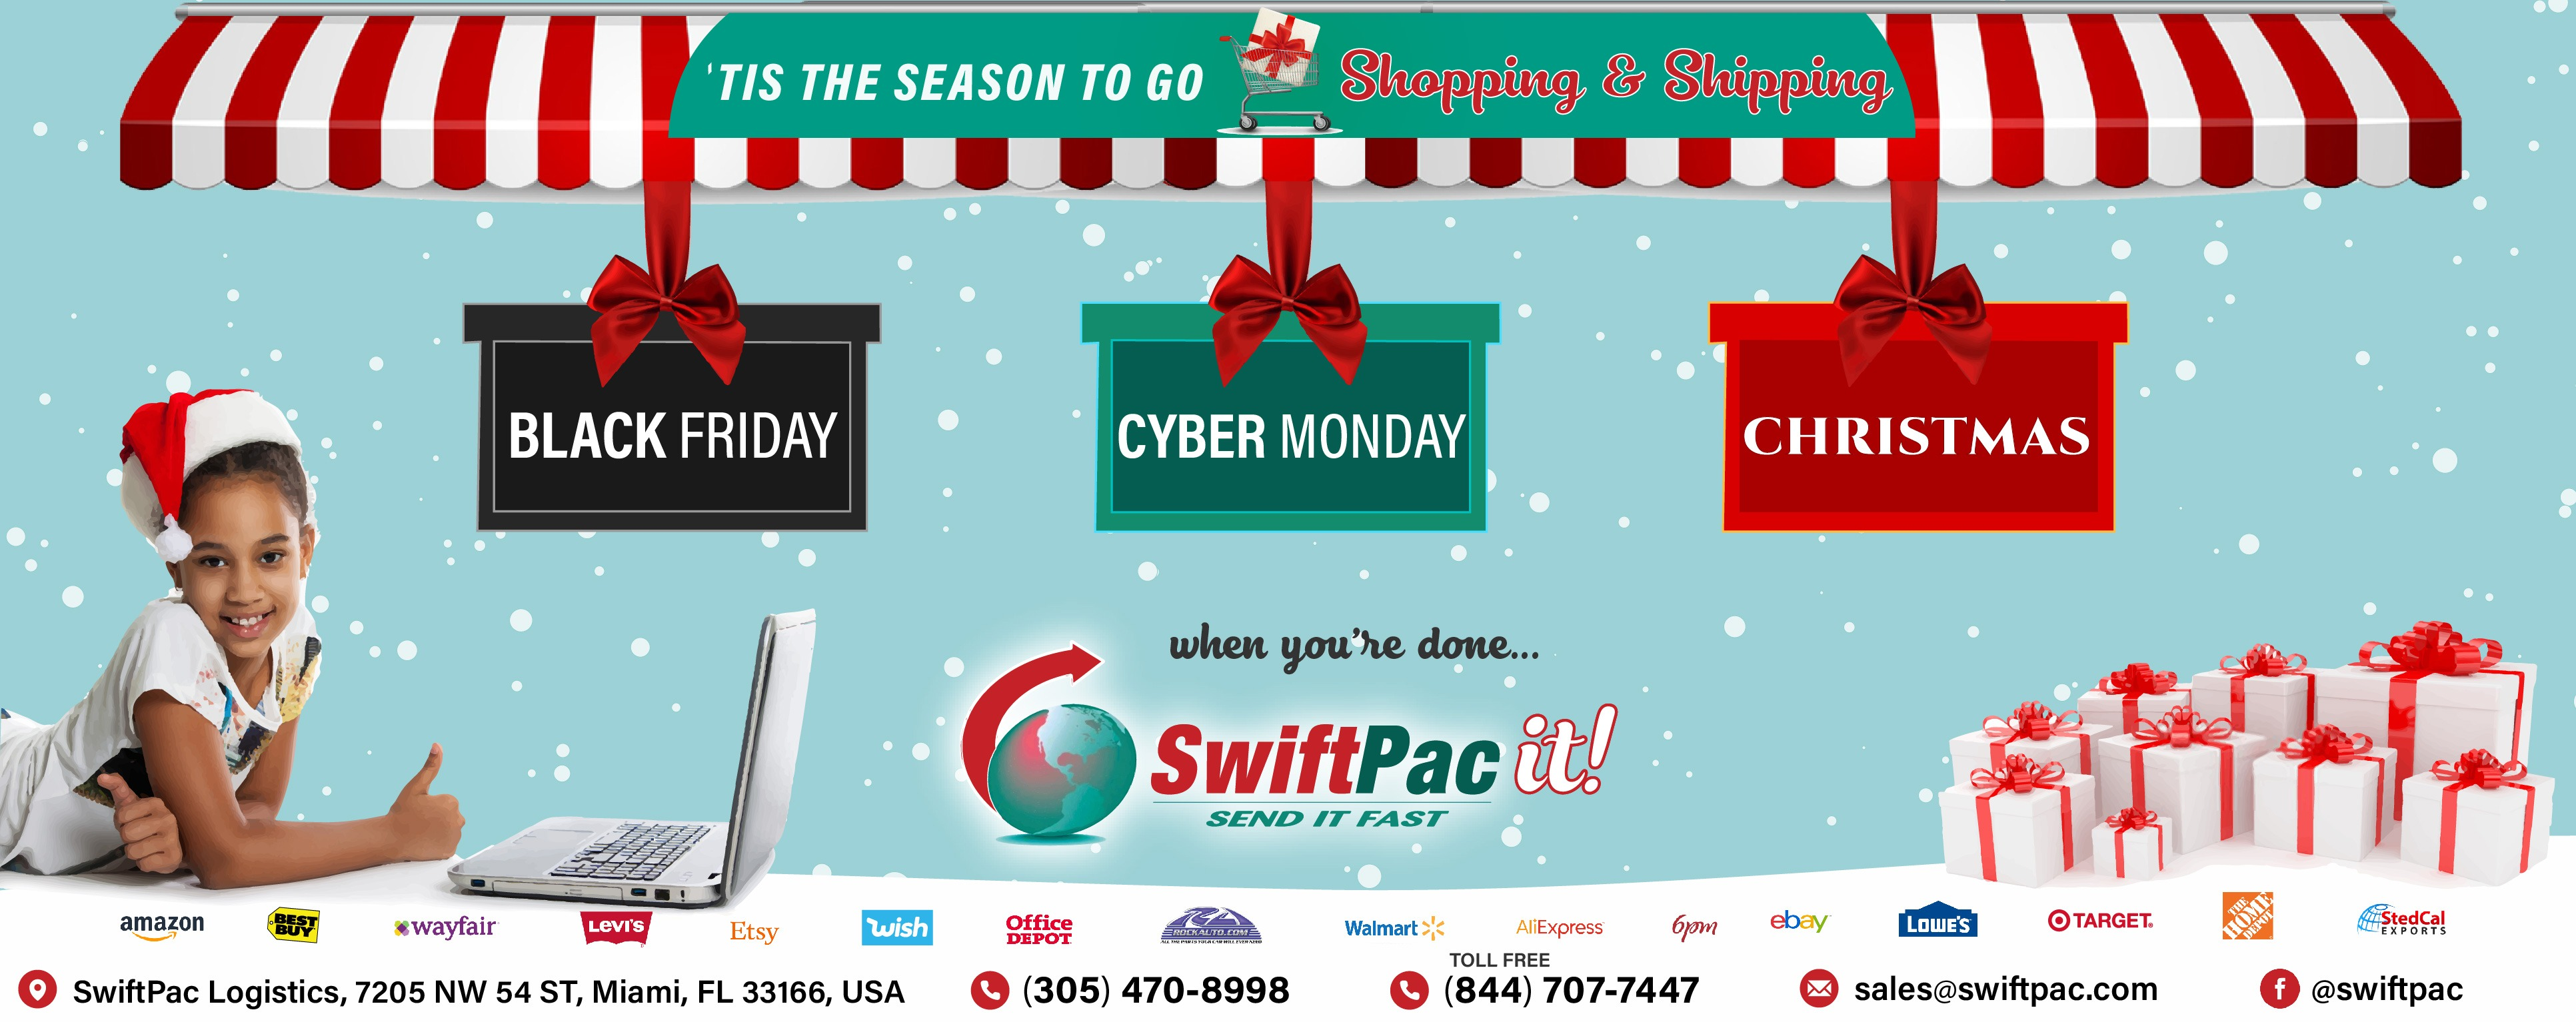 Shop Ship SwiftPac